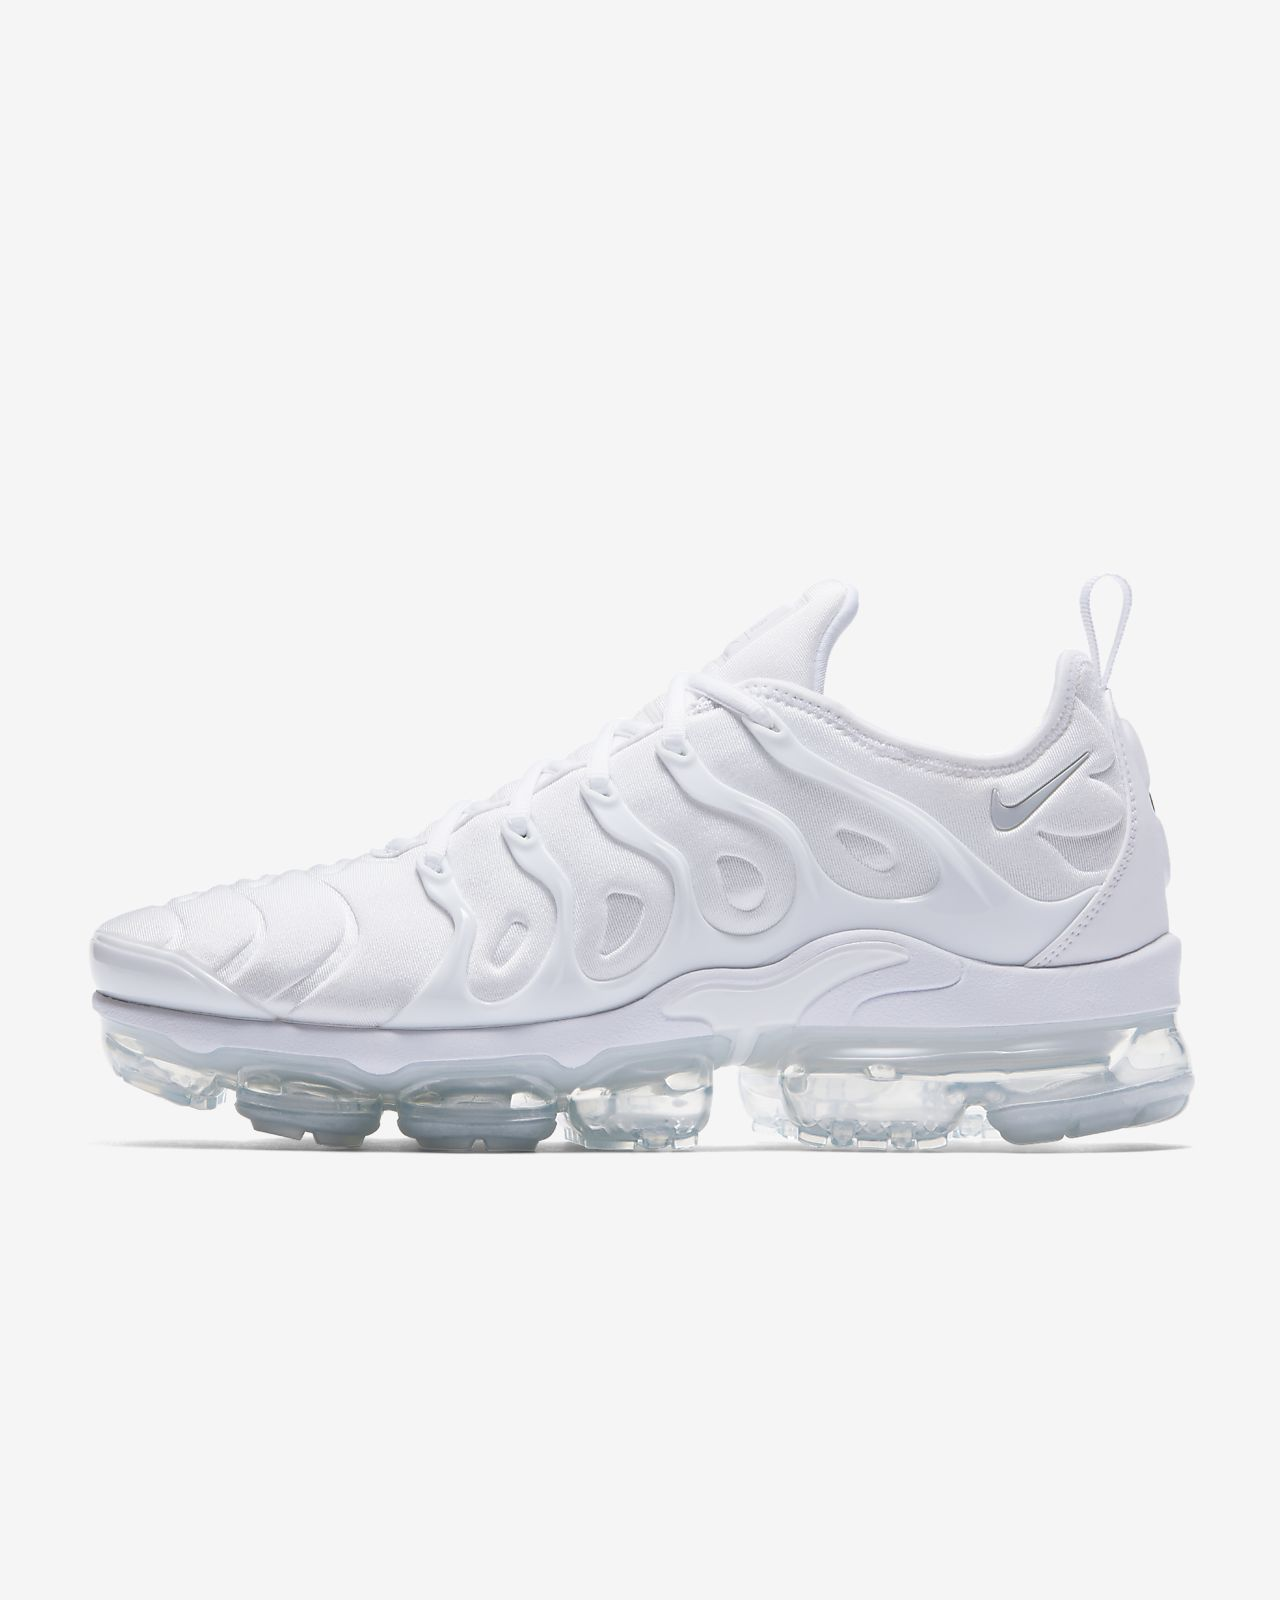 7ecbfe49c Nike Air VaporMax Plus Men s Shoe. Nike.com DK